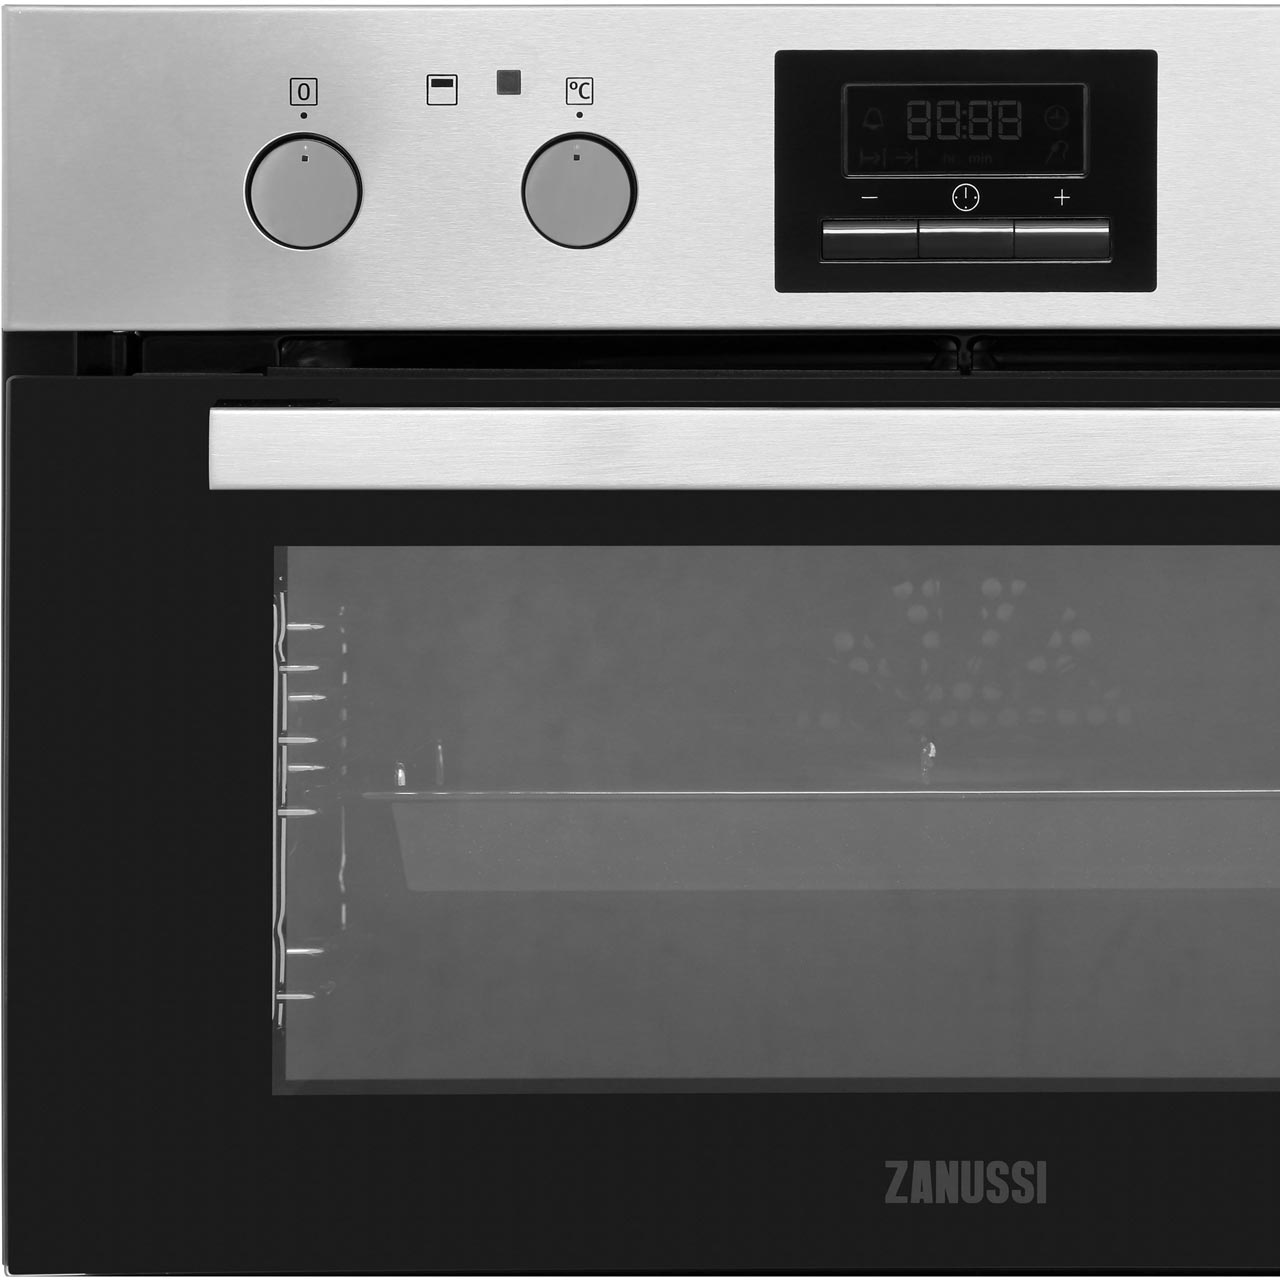 Zanussi Zof35802xk Built Under 59cm A A Electric Double